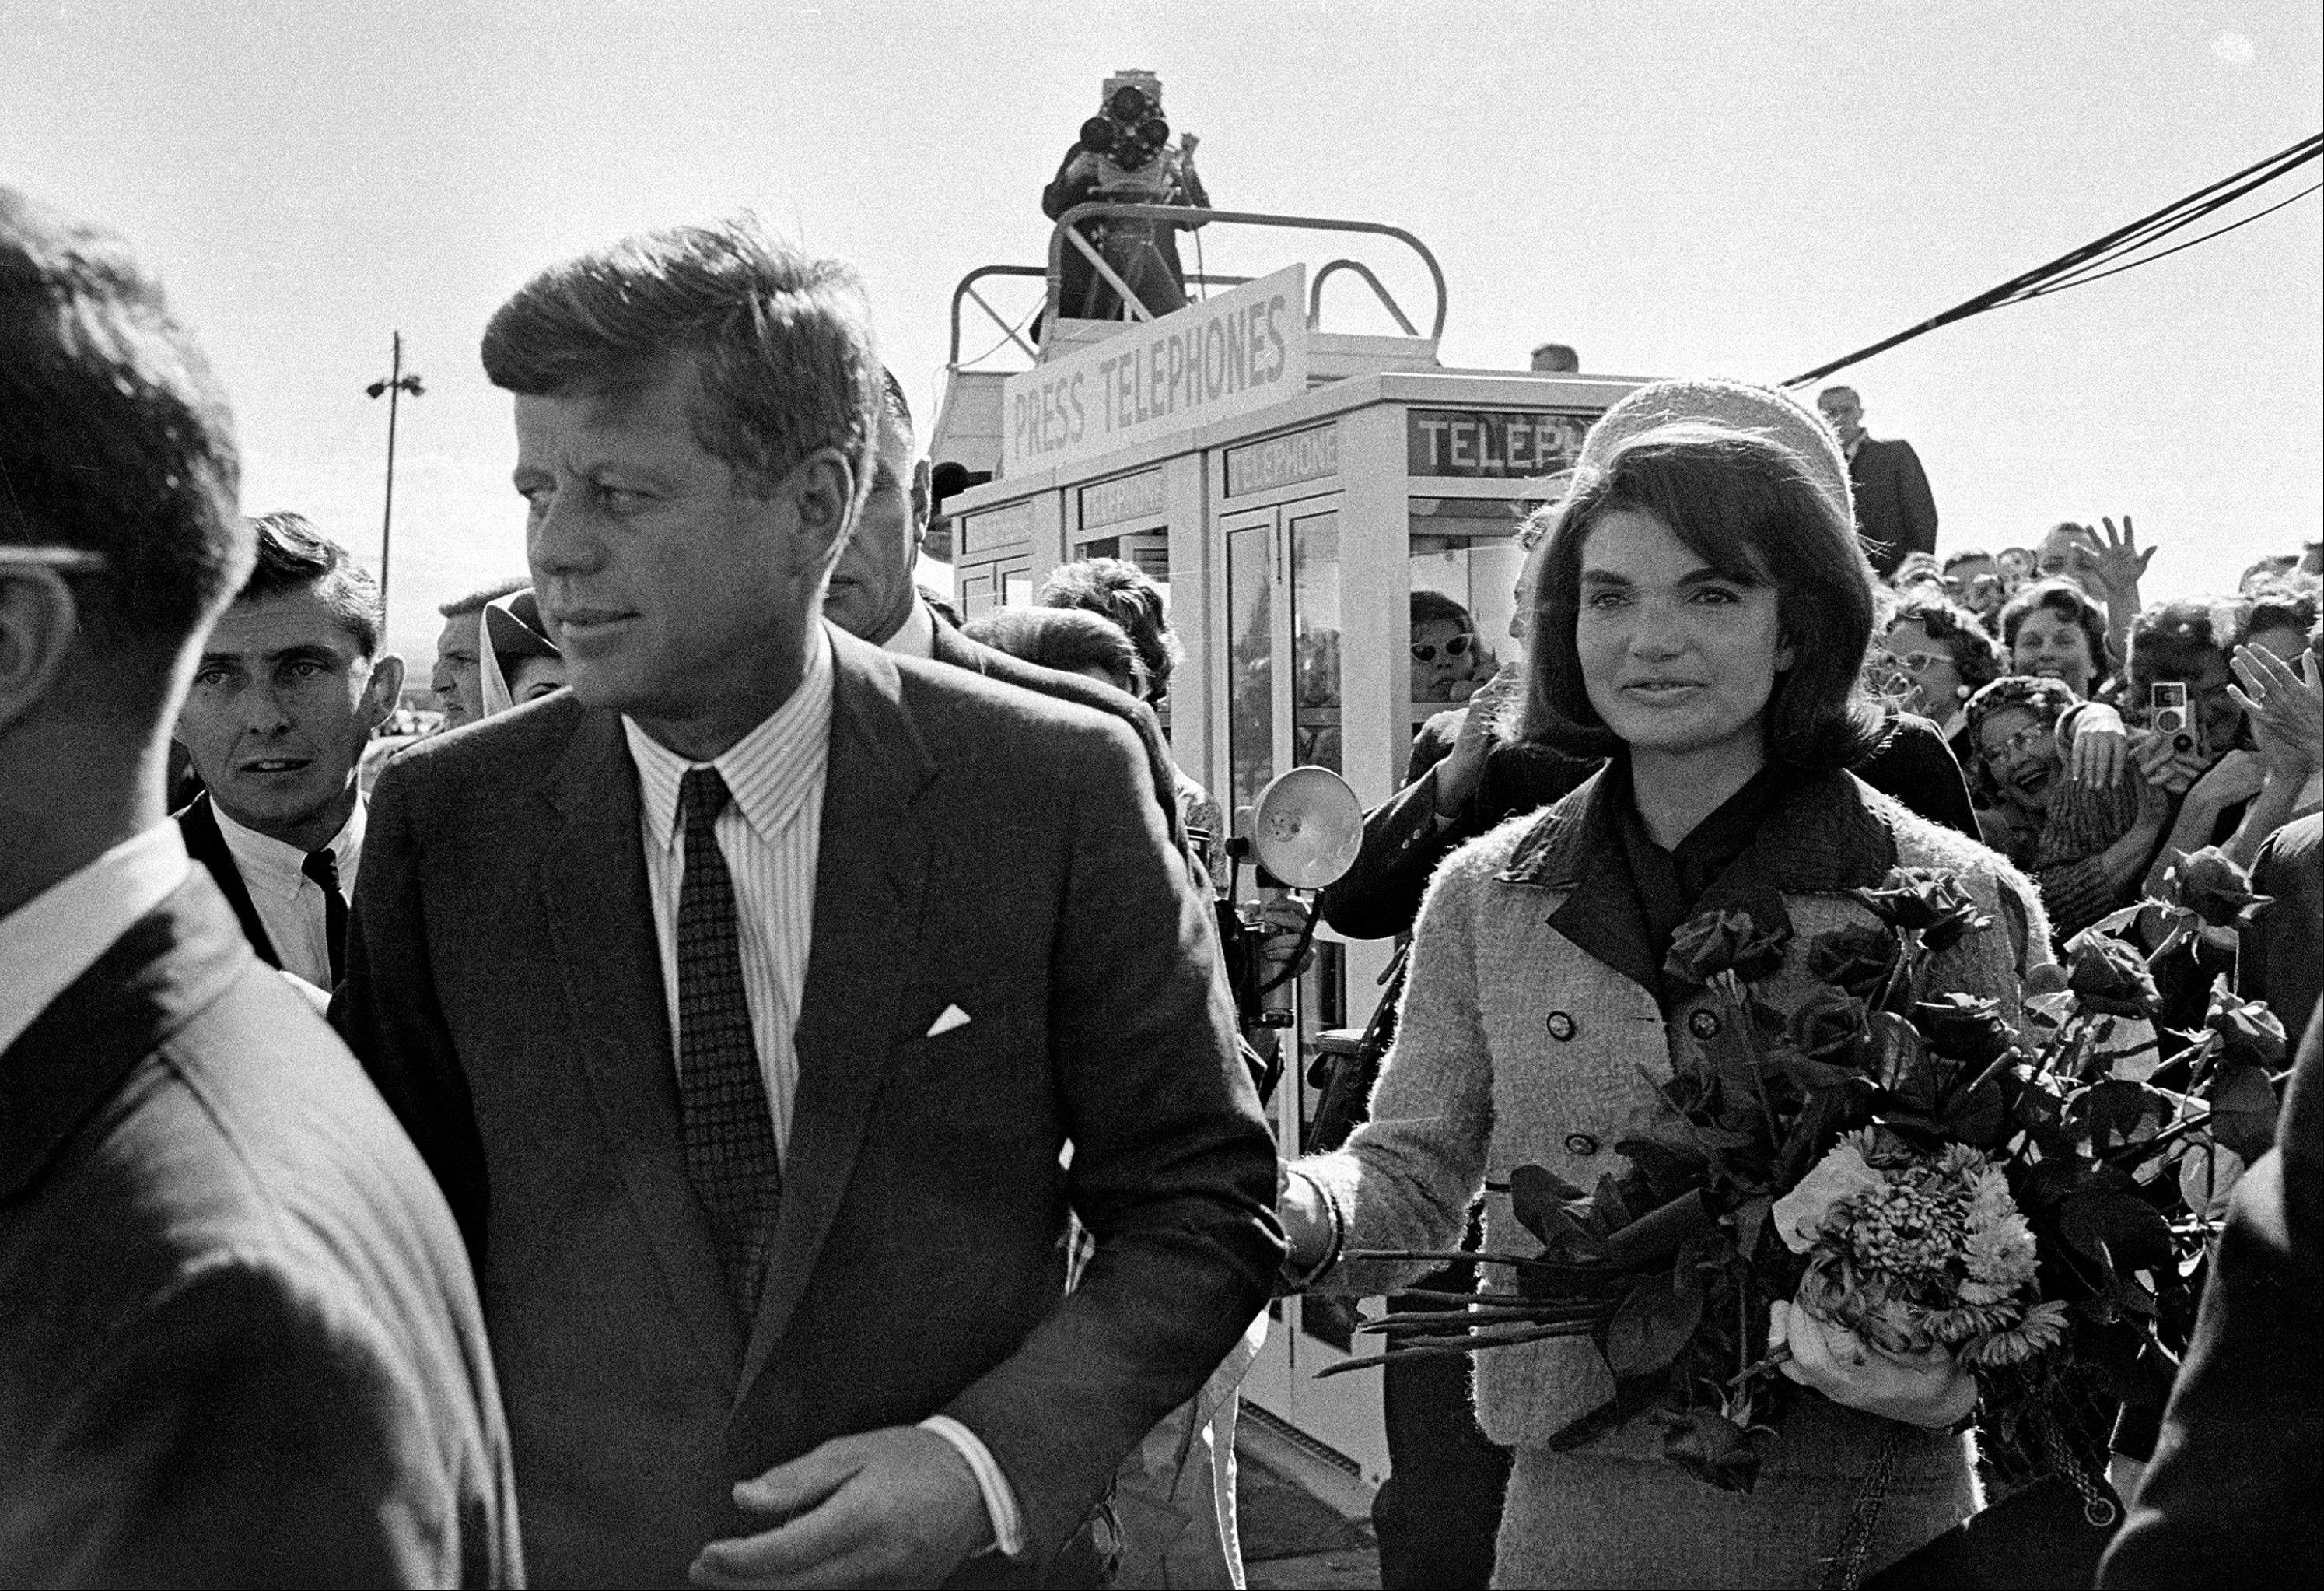 In this Nov. 22, 1963, file photo, President John F. Kennedy and his wife, Jacqueline Kennedy, arrive at Love Field airport in Dallas.